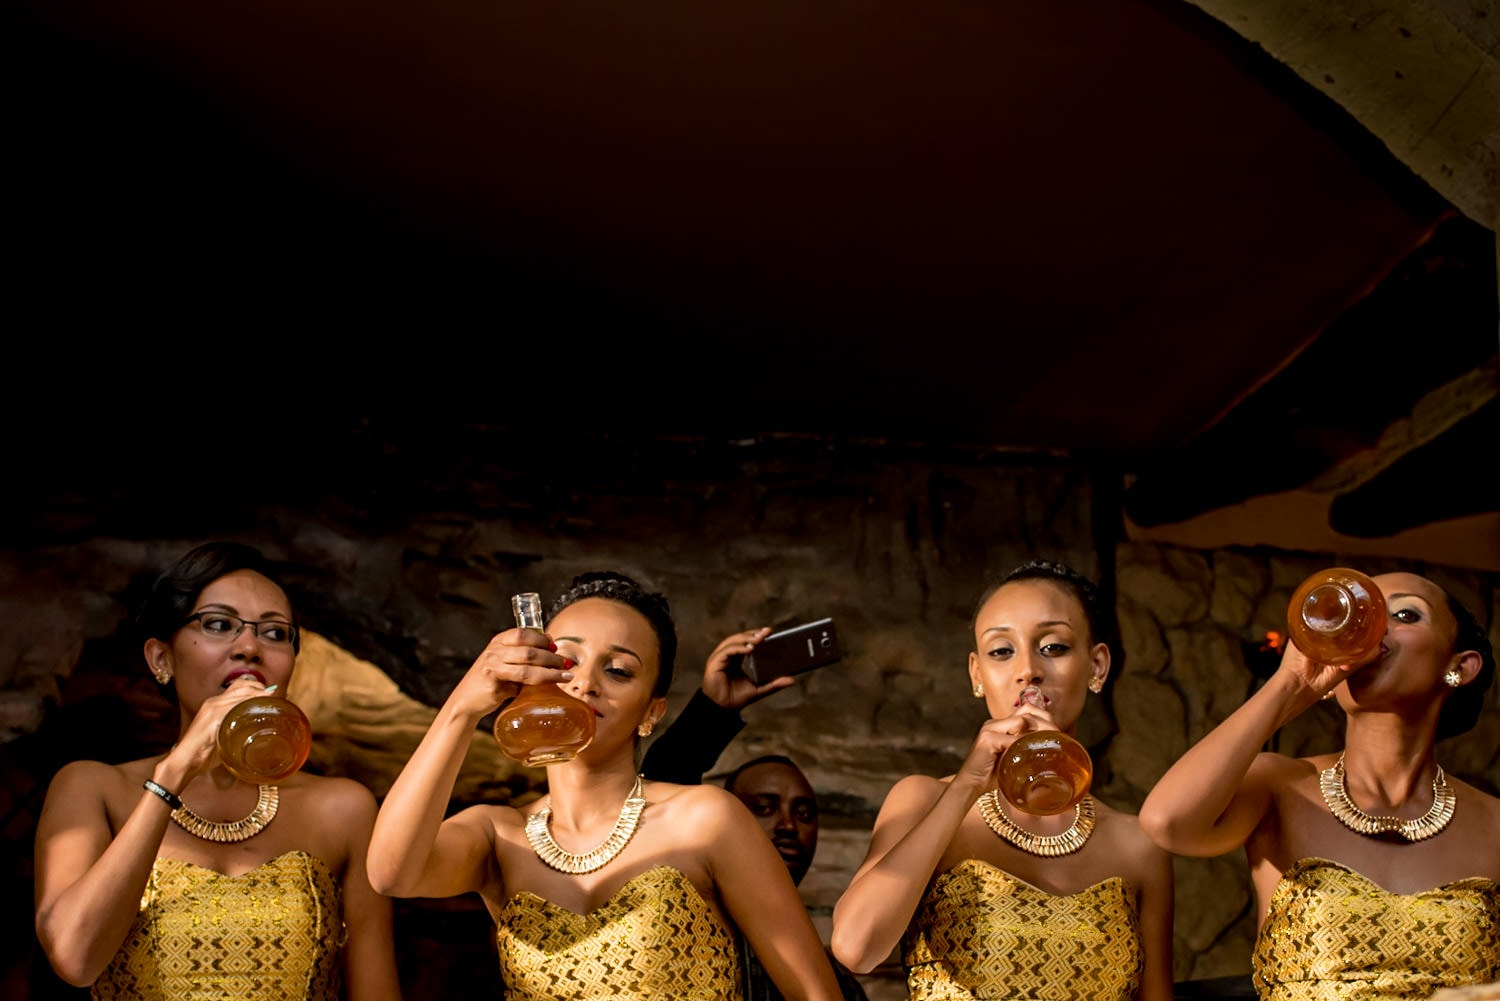 Ethiopian bridesmaids drinking honey wine at the wedding